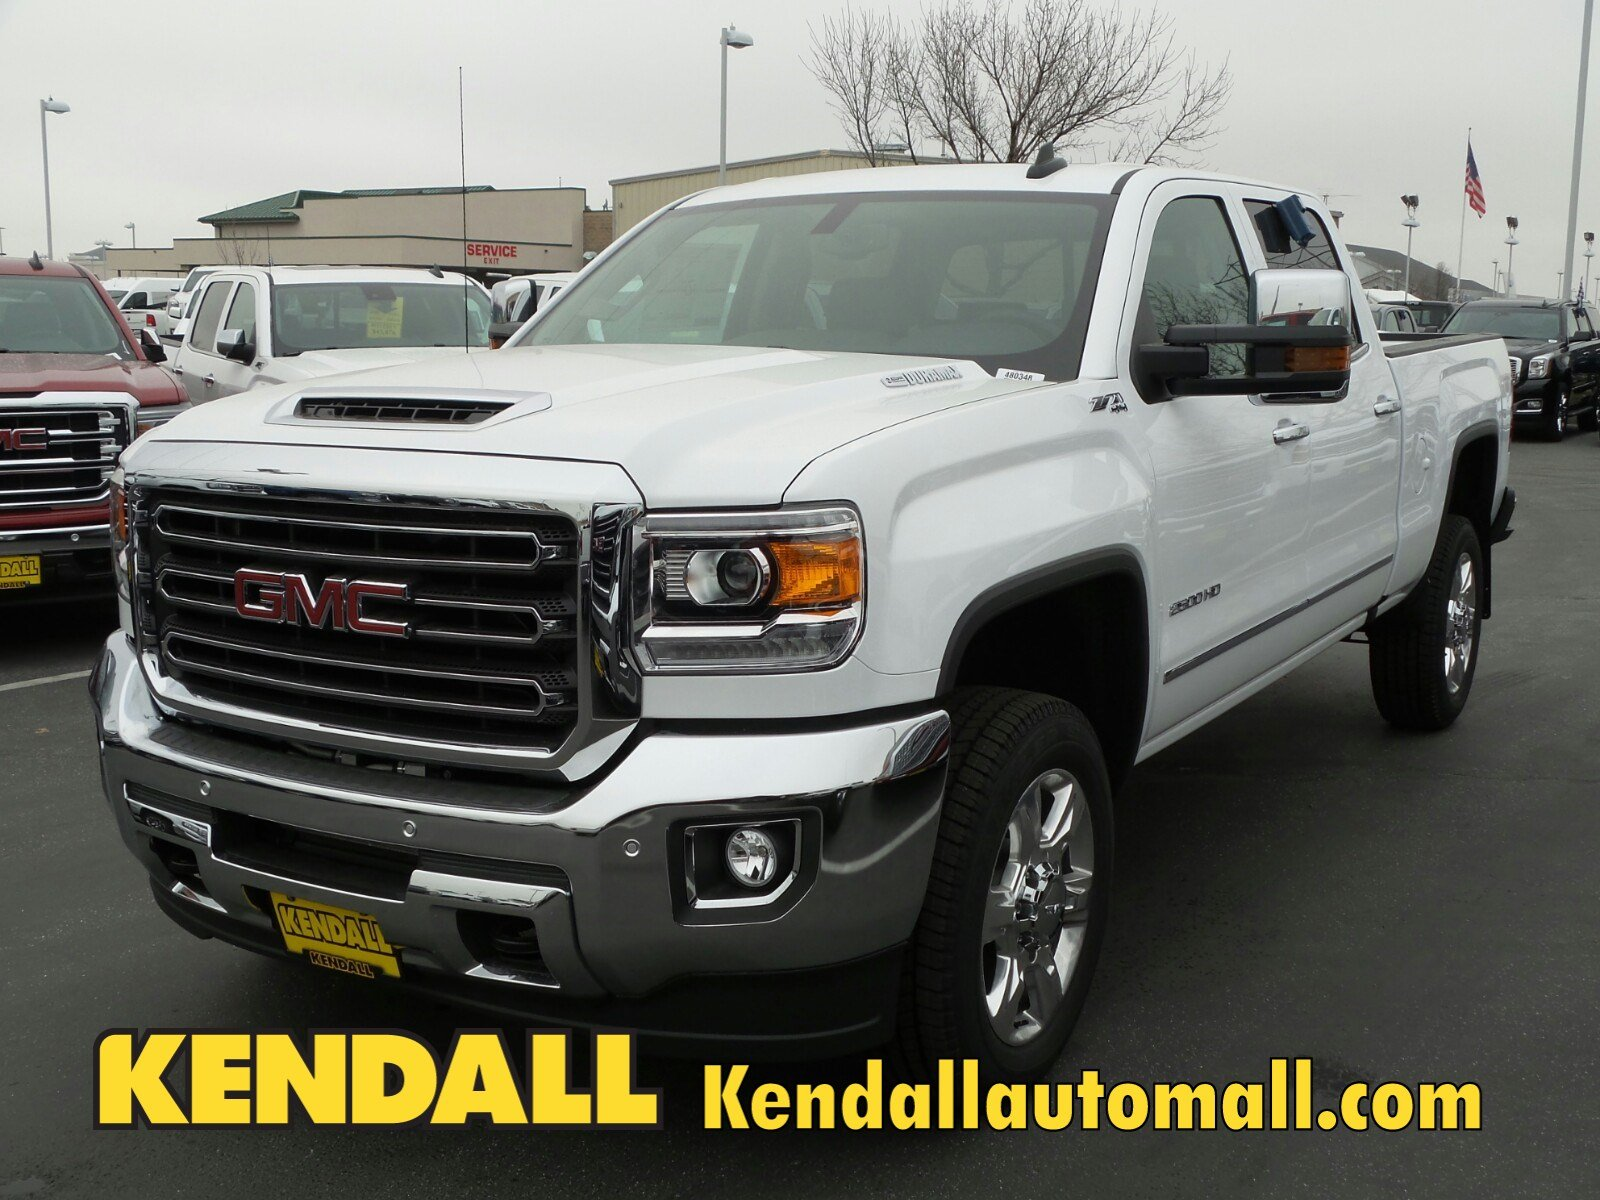 Kendall Auto Mall >> New 2018 GMC Sierra 2500HD SLT 4WD in Nampa #D480348 | Kendall at the Idaho Center Auto Mall